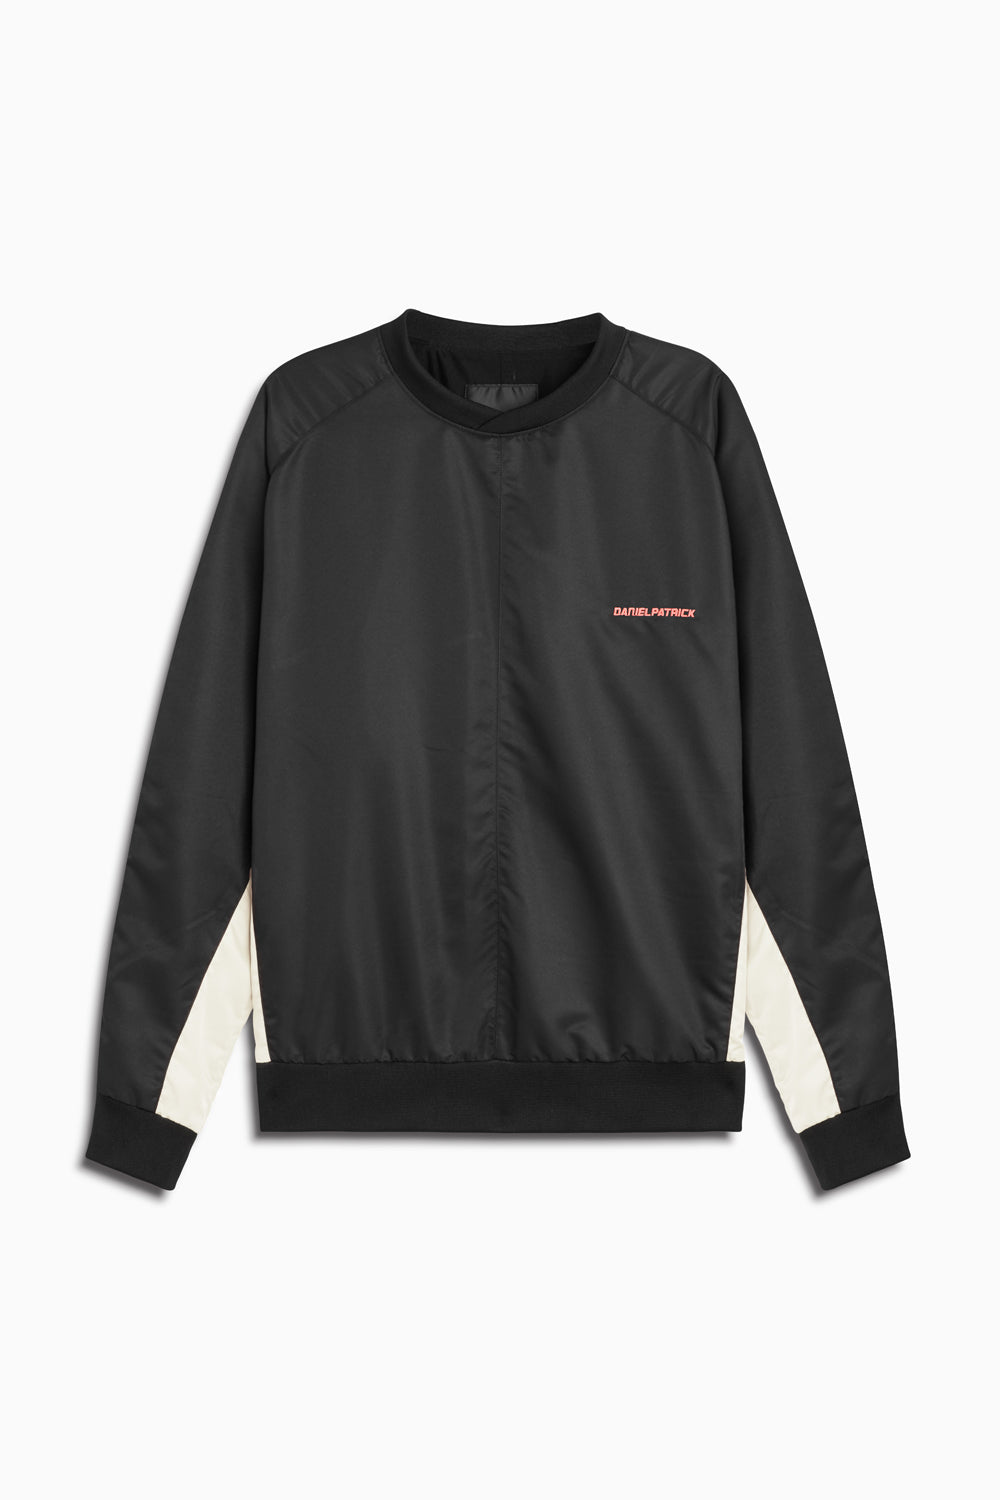 pullover windbreaker 2019 in black/ivory by daniel patrick